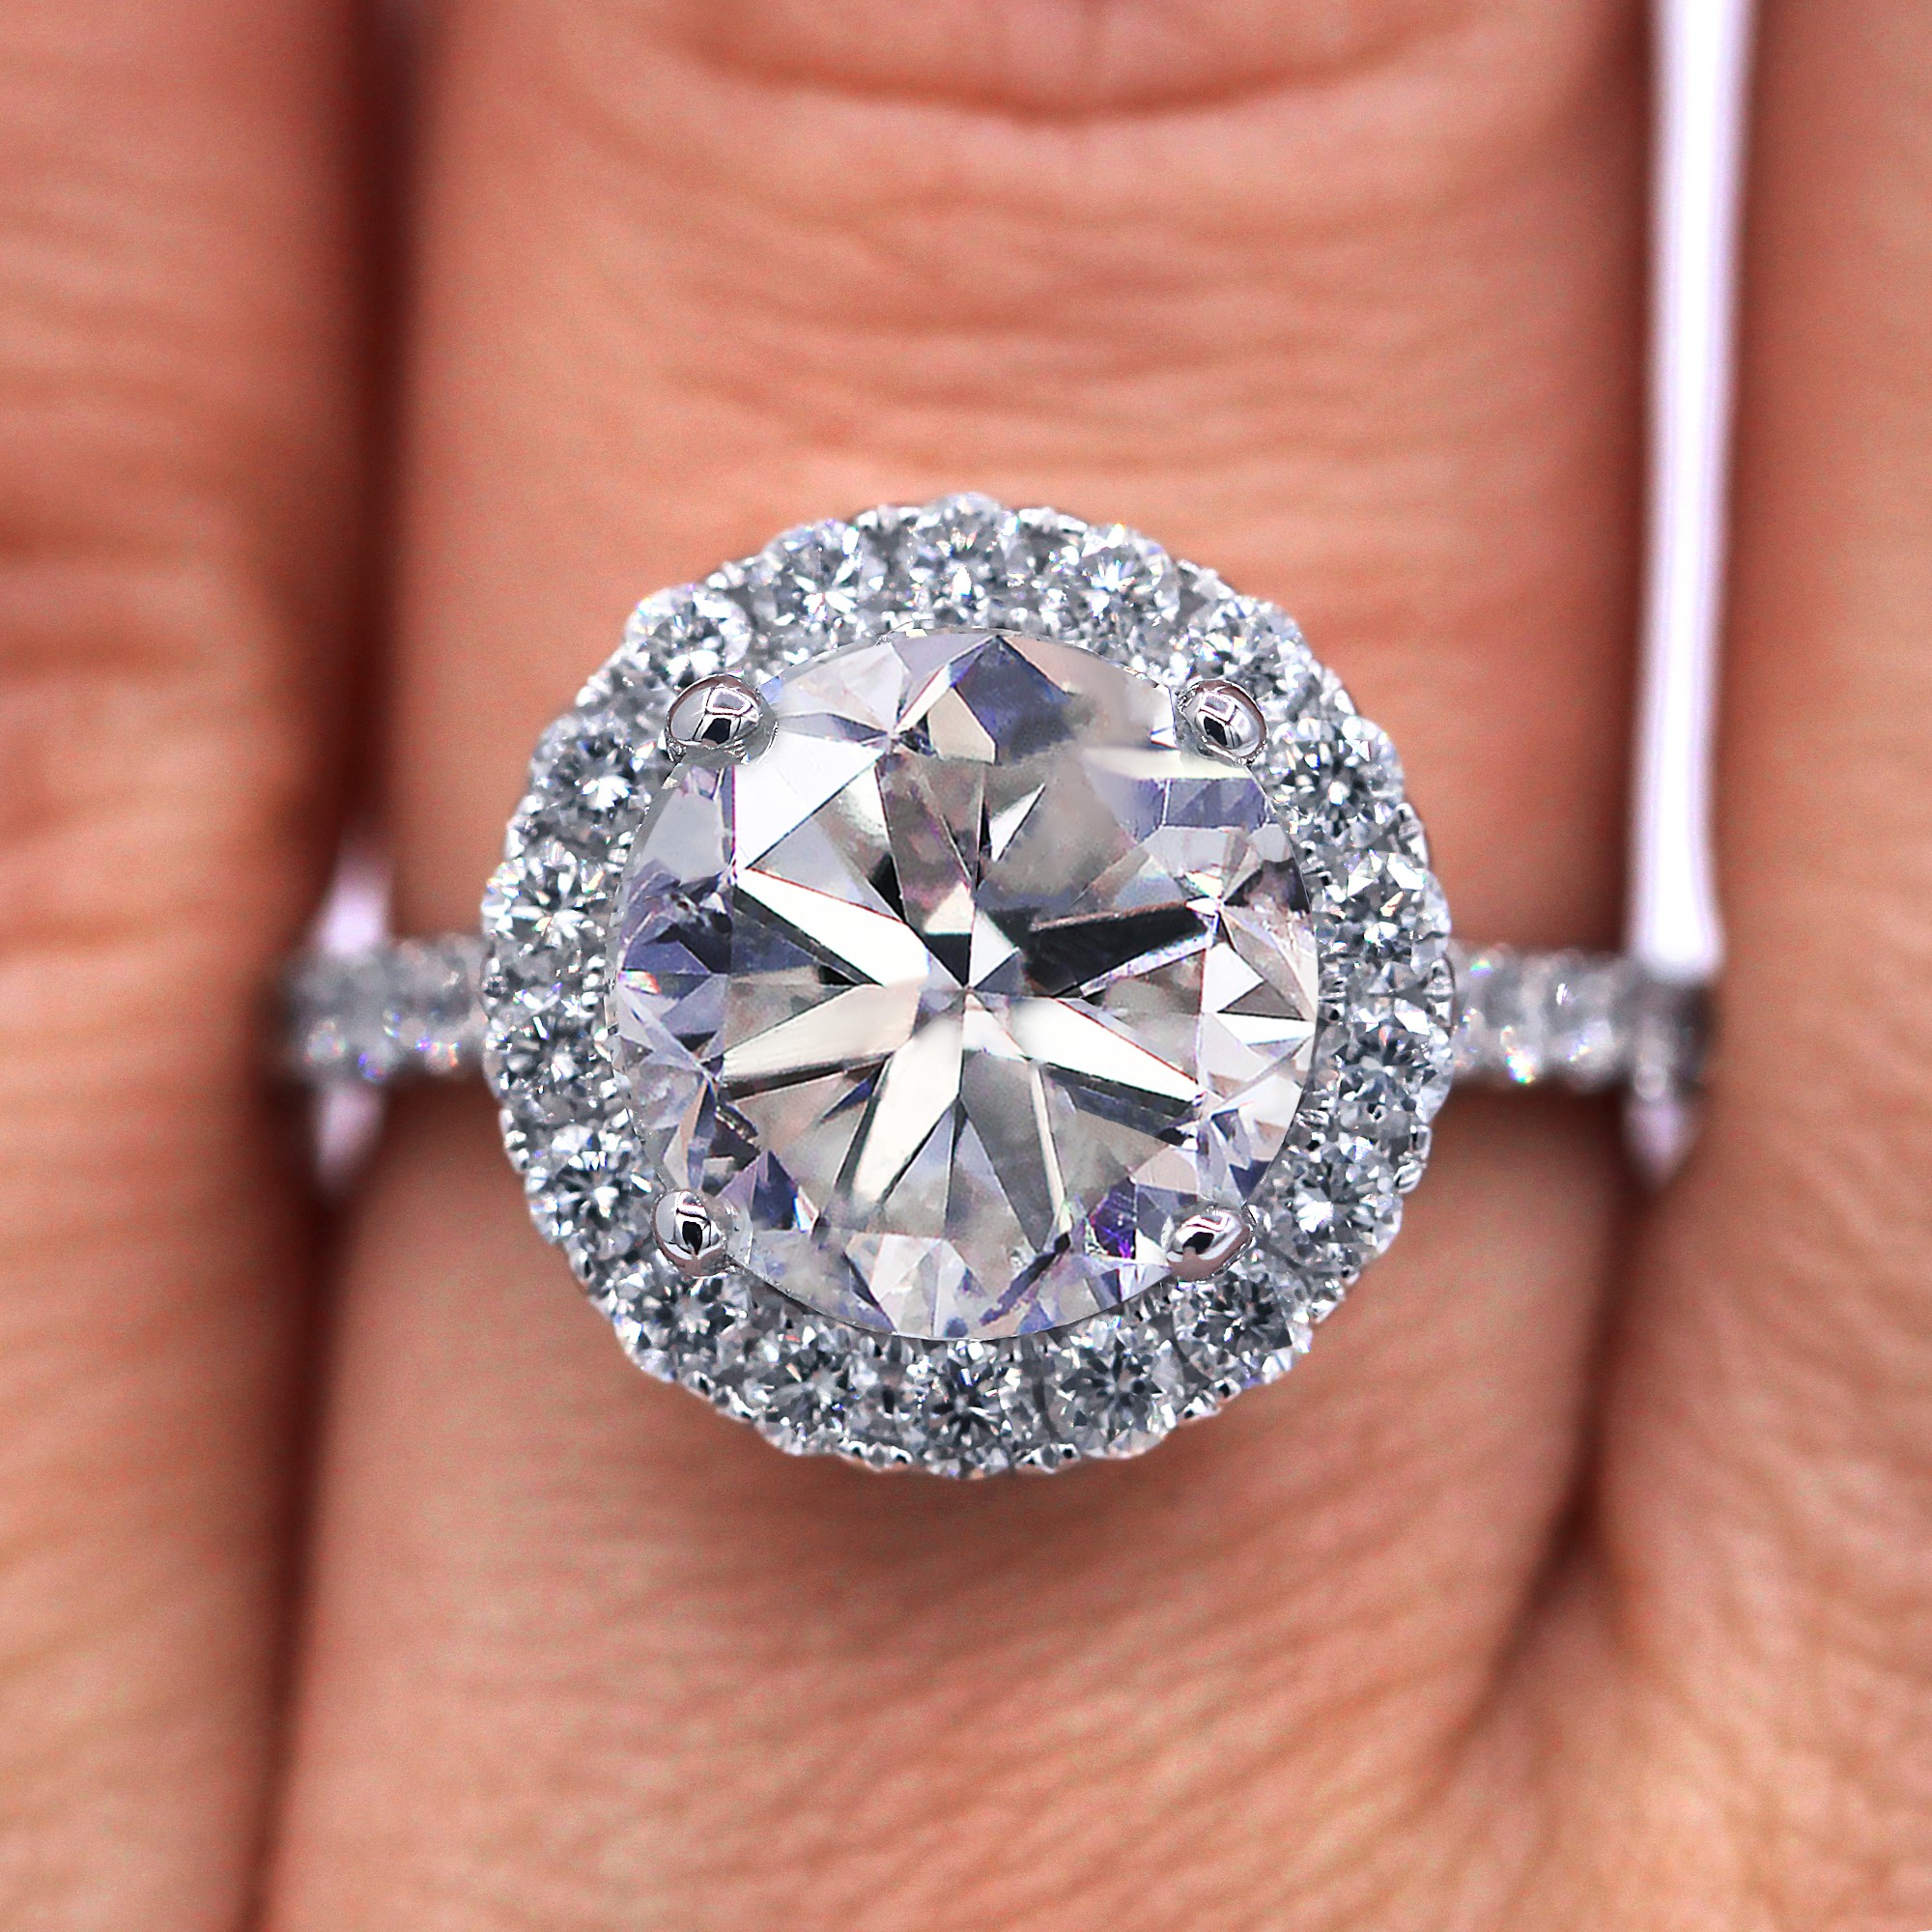 Insanely beaufull diamond engagement ring with 4.17 TCW